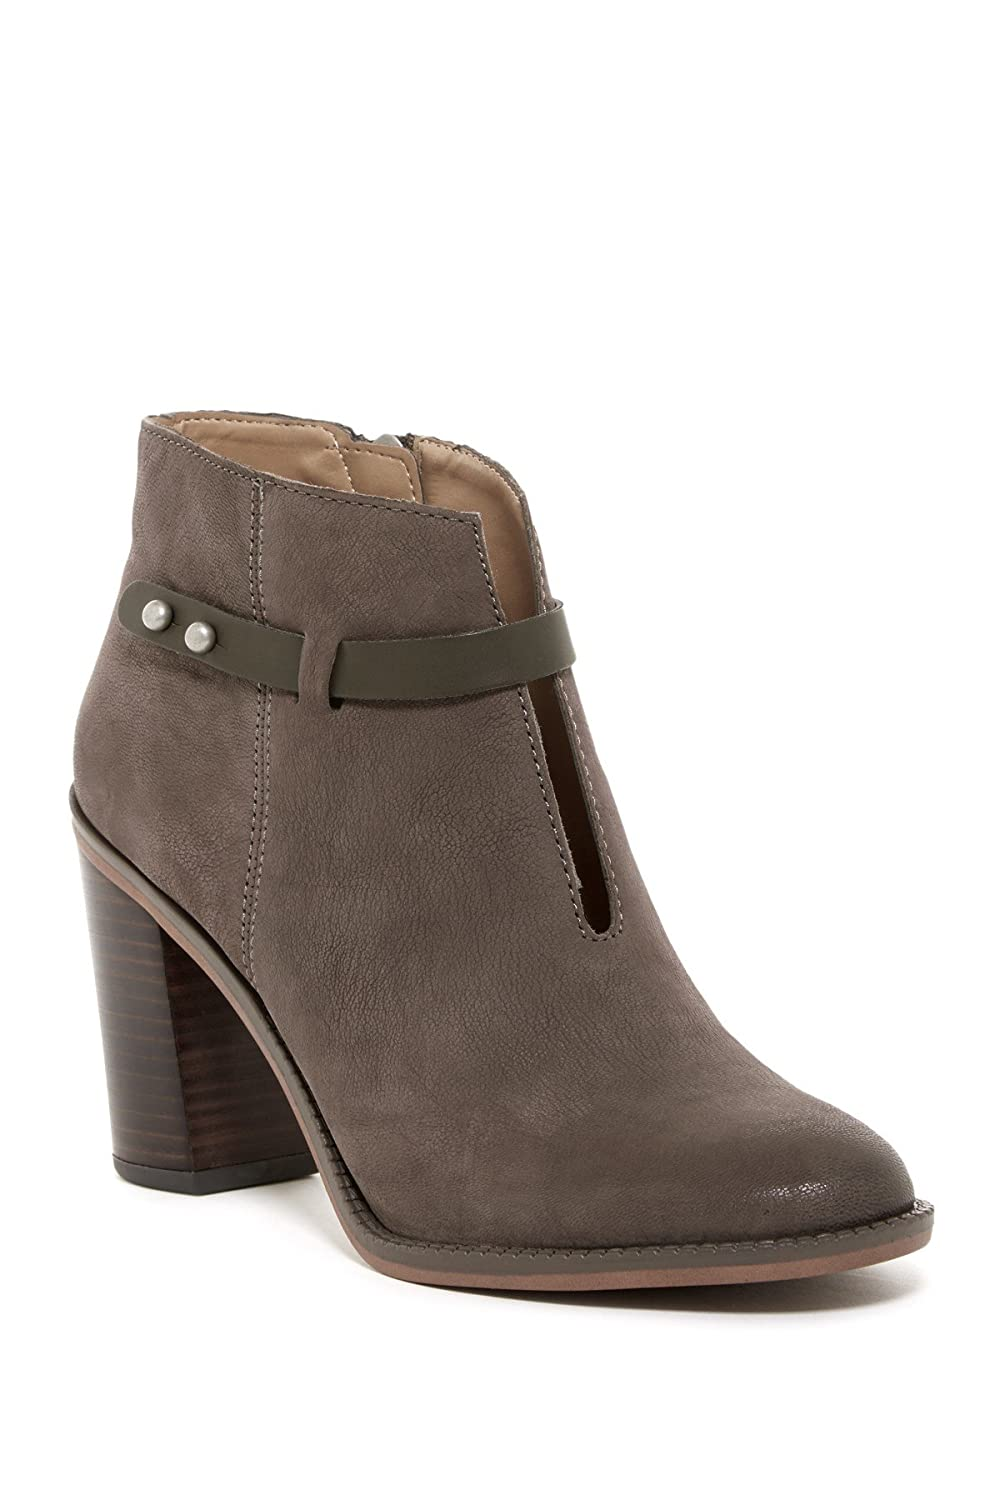 6879946f421 Amazon.com | Franco Sarto Women's Elvis Ankle Boot (Wide) Grey, 8.5 ...